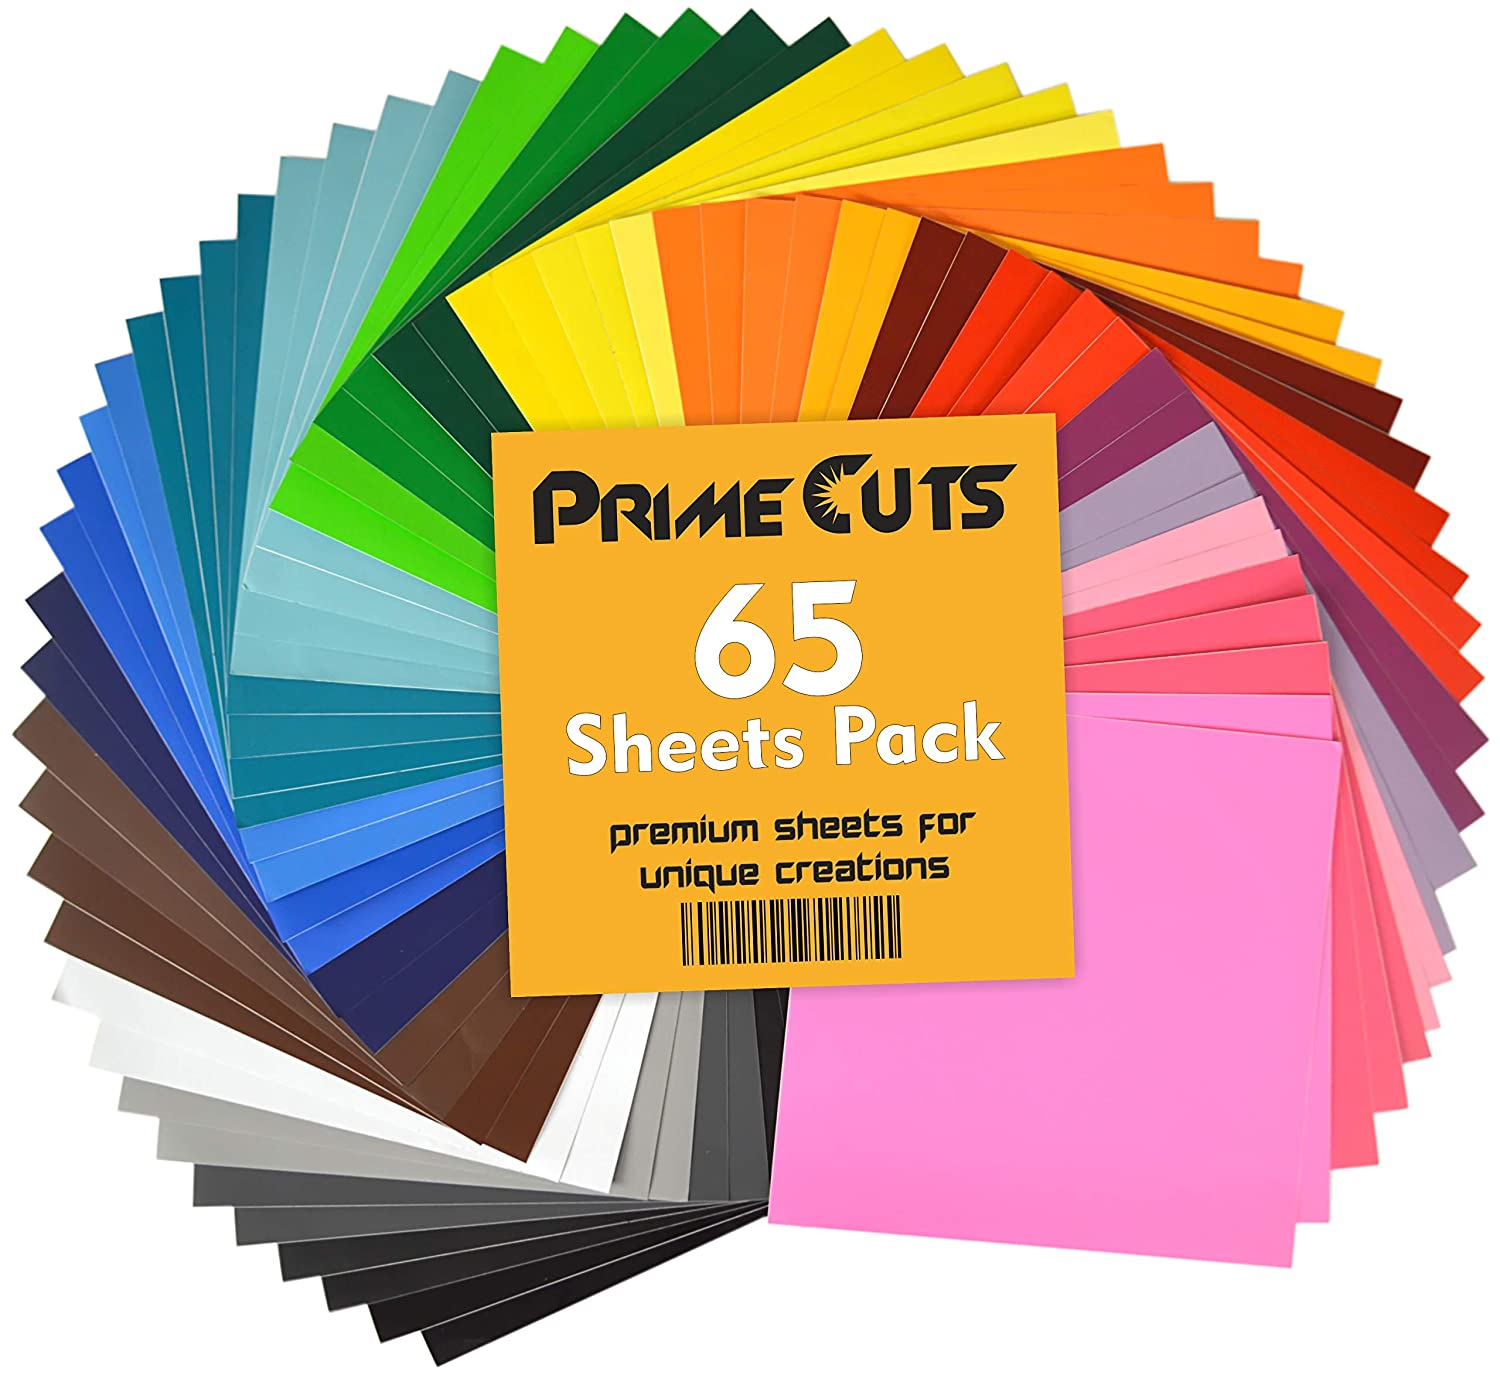 "Permanent Adhesive Backed Vinyl Sheets By PrimeCuts USA - 65 VINYL SHEETS 12"" x 12"" - 65 Assorted Color Sheets for Cricut, Silhouette Cameo, and Other Craft Cutters"